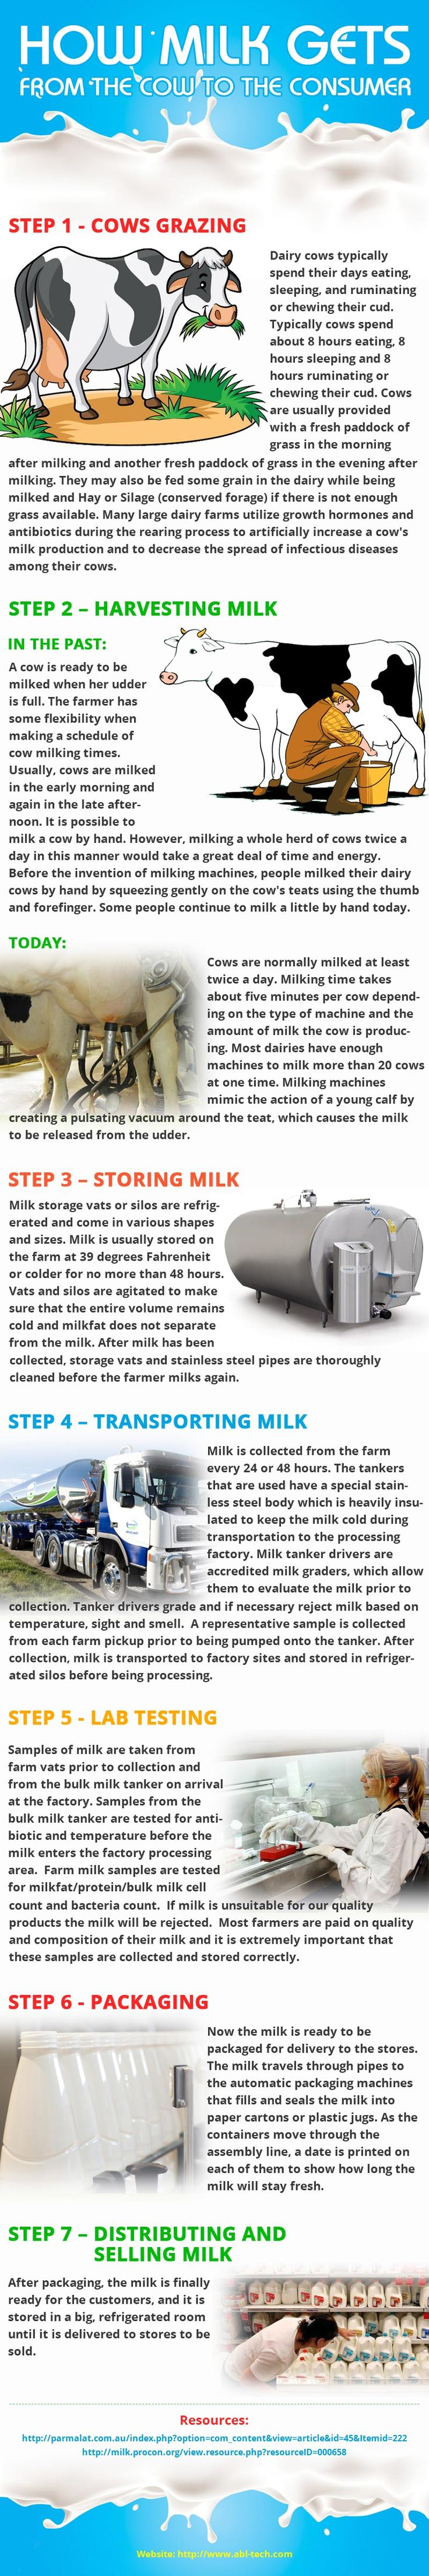 How milk gets from the cow to the consumer